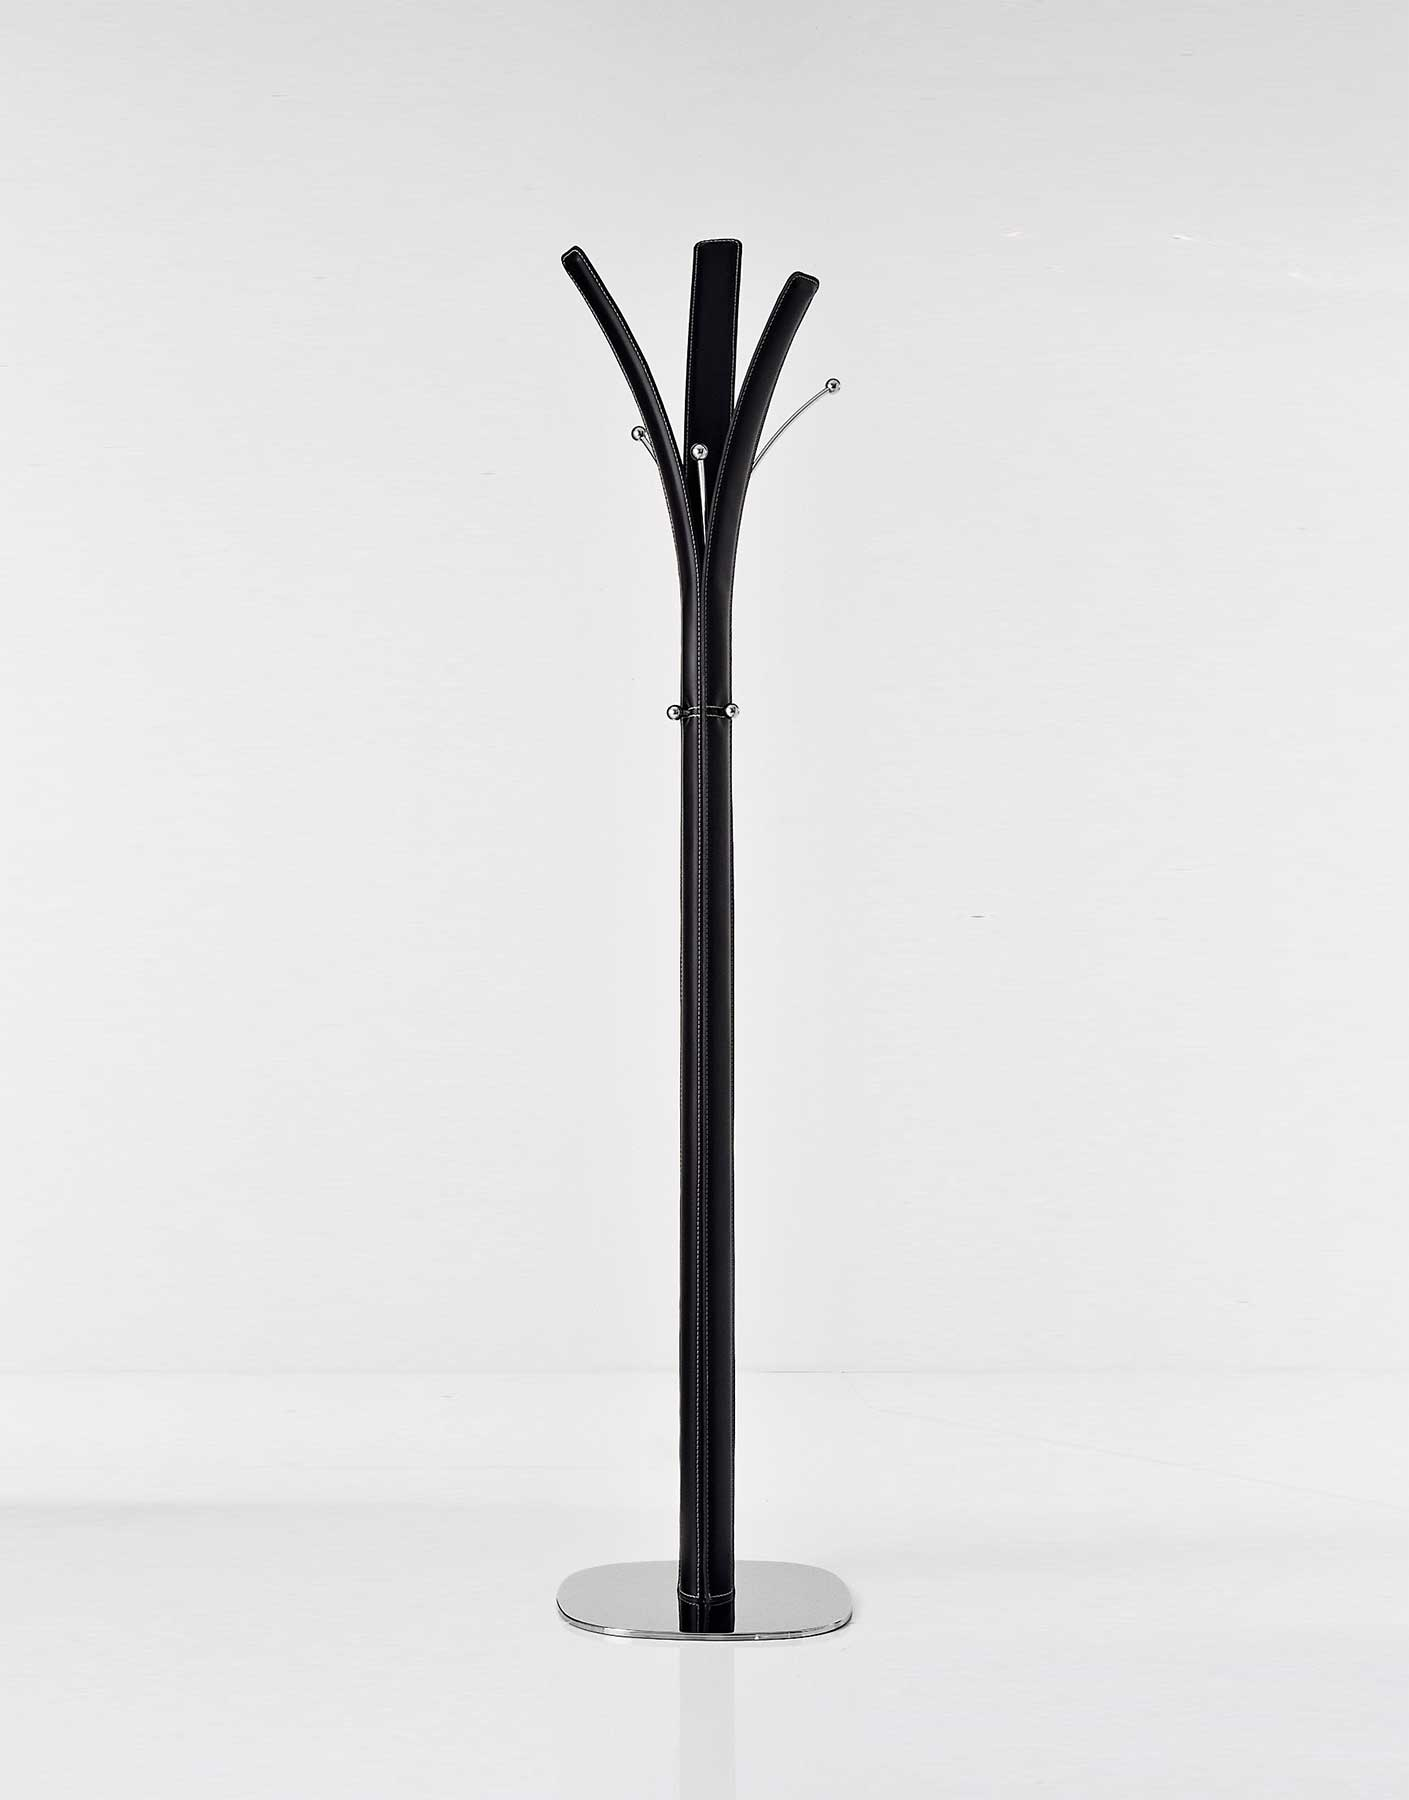 Refined clothes stand designed by Arter and Citton. Covered with regenerated leather. Metal frame, chromed details. Home delivery, online shopping.